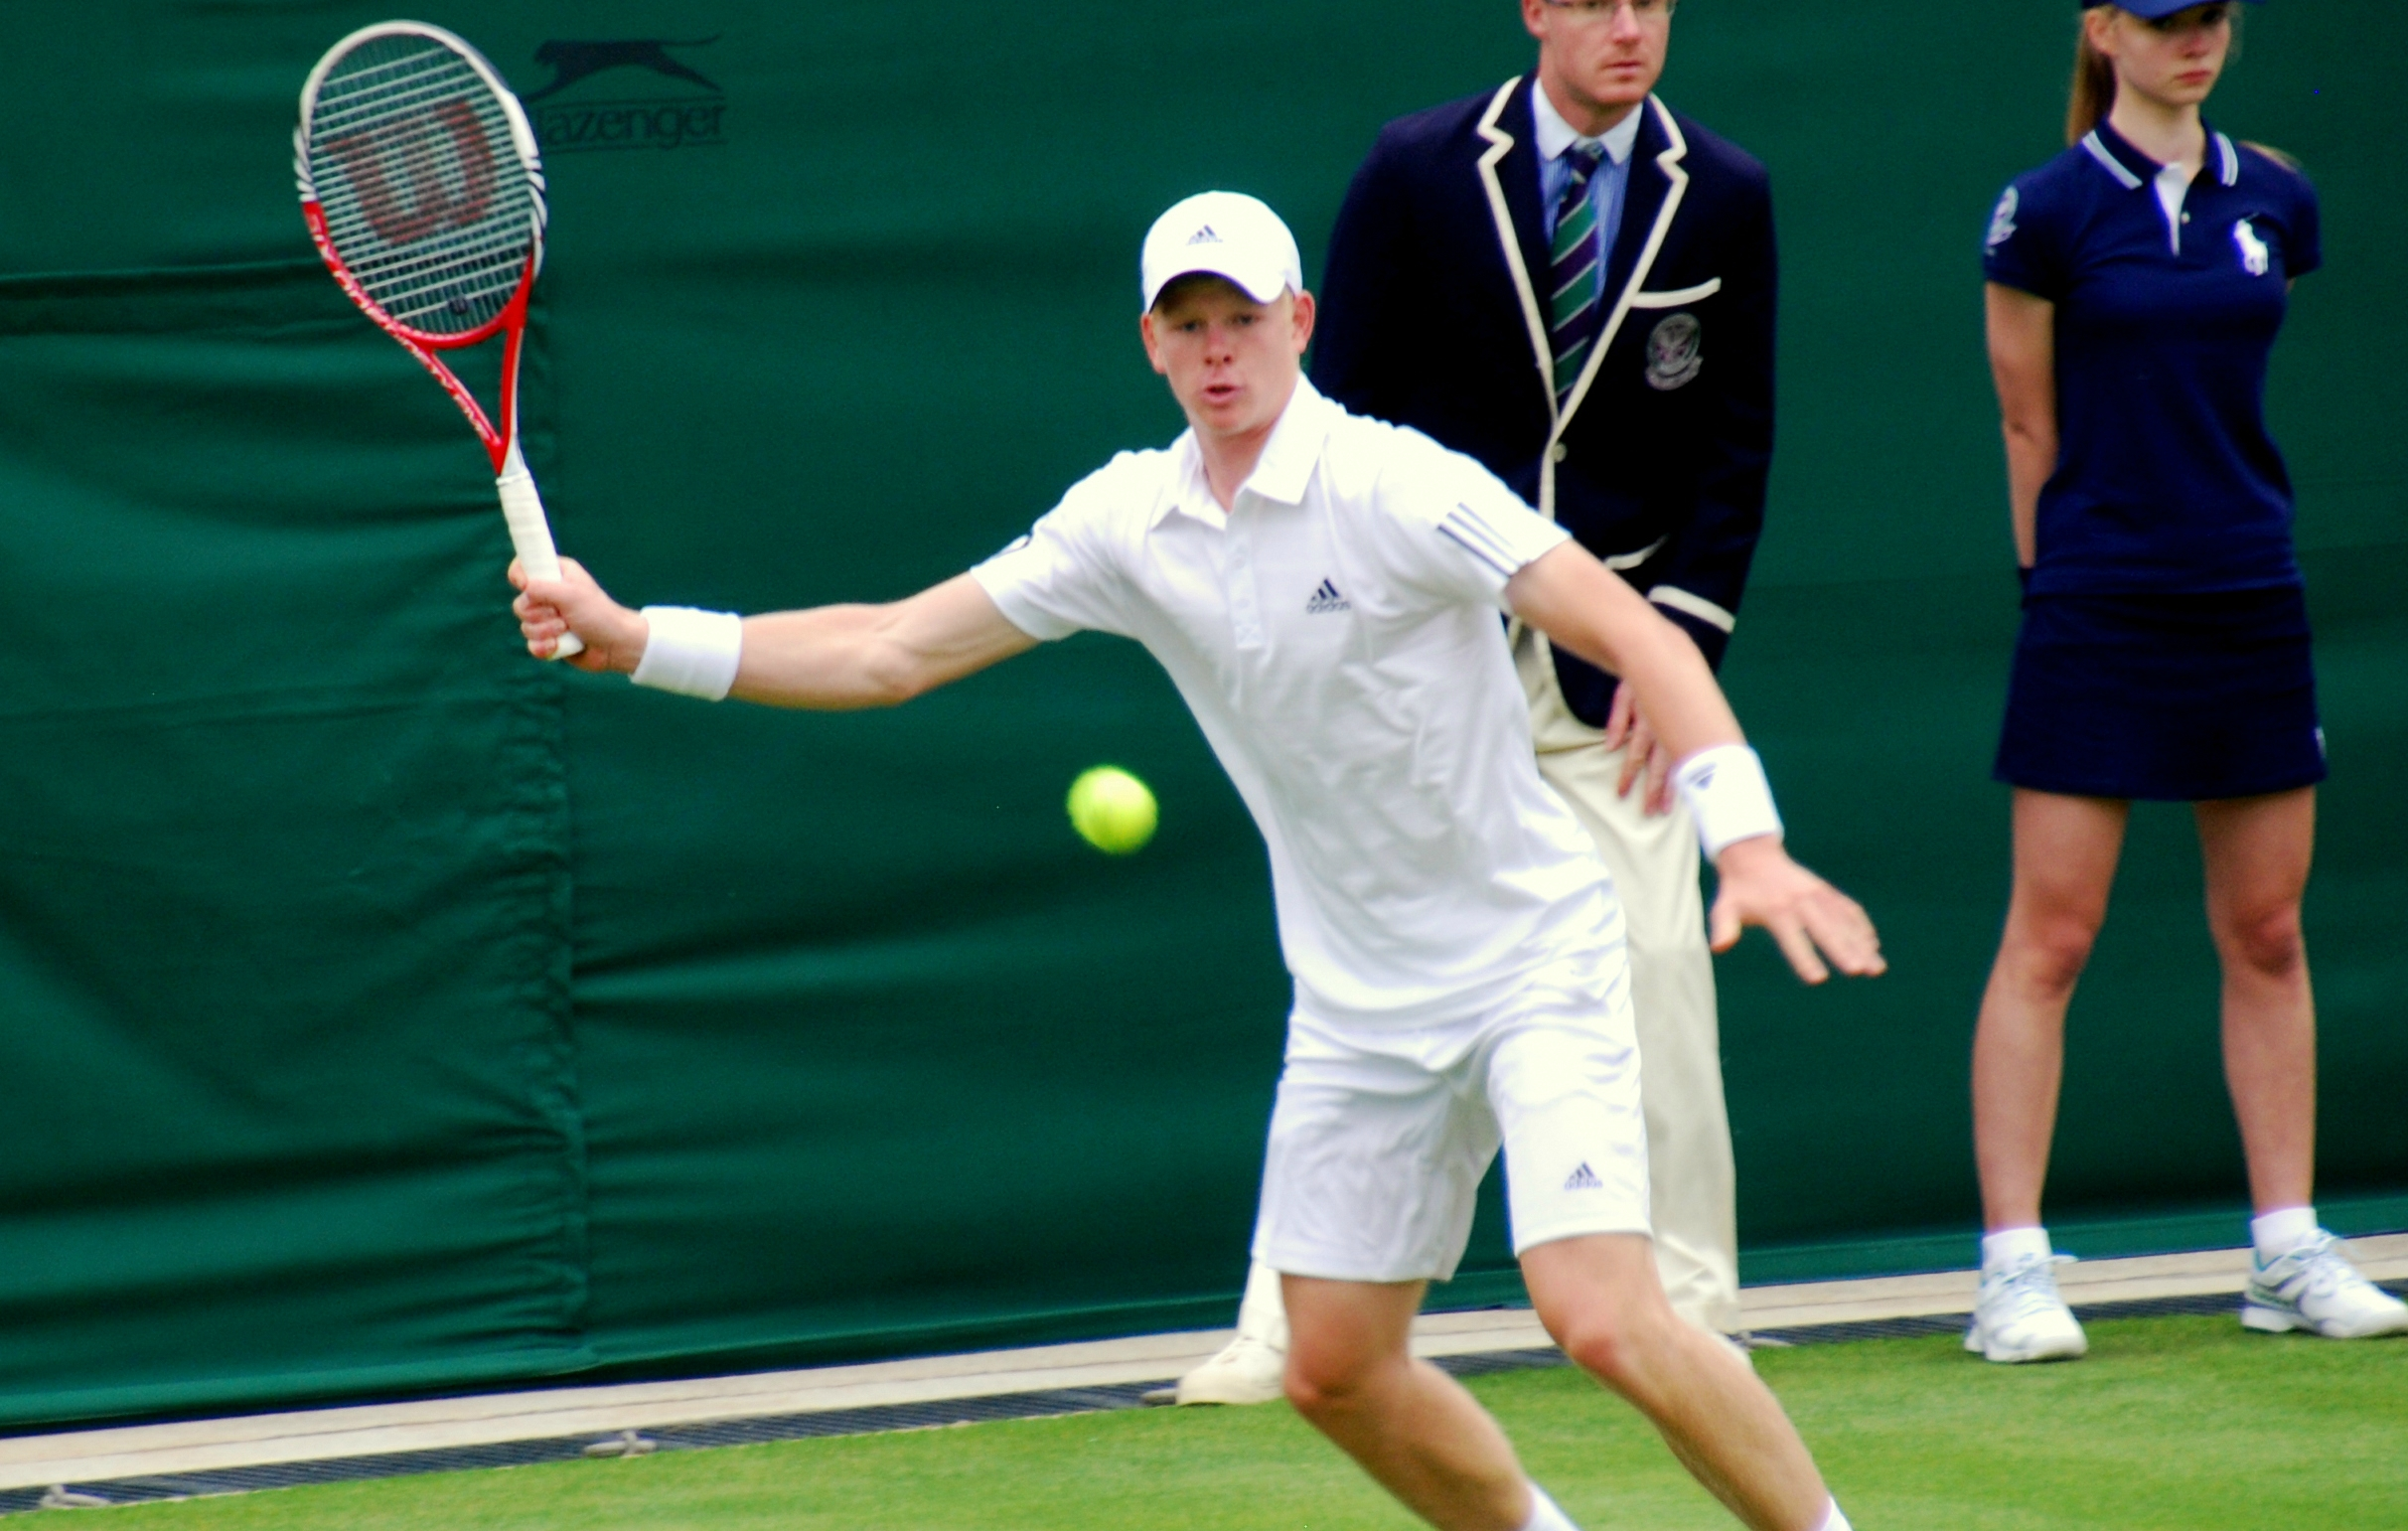 Edmund hopeful of Davis Cup involvement